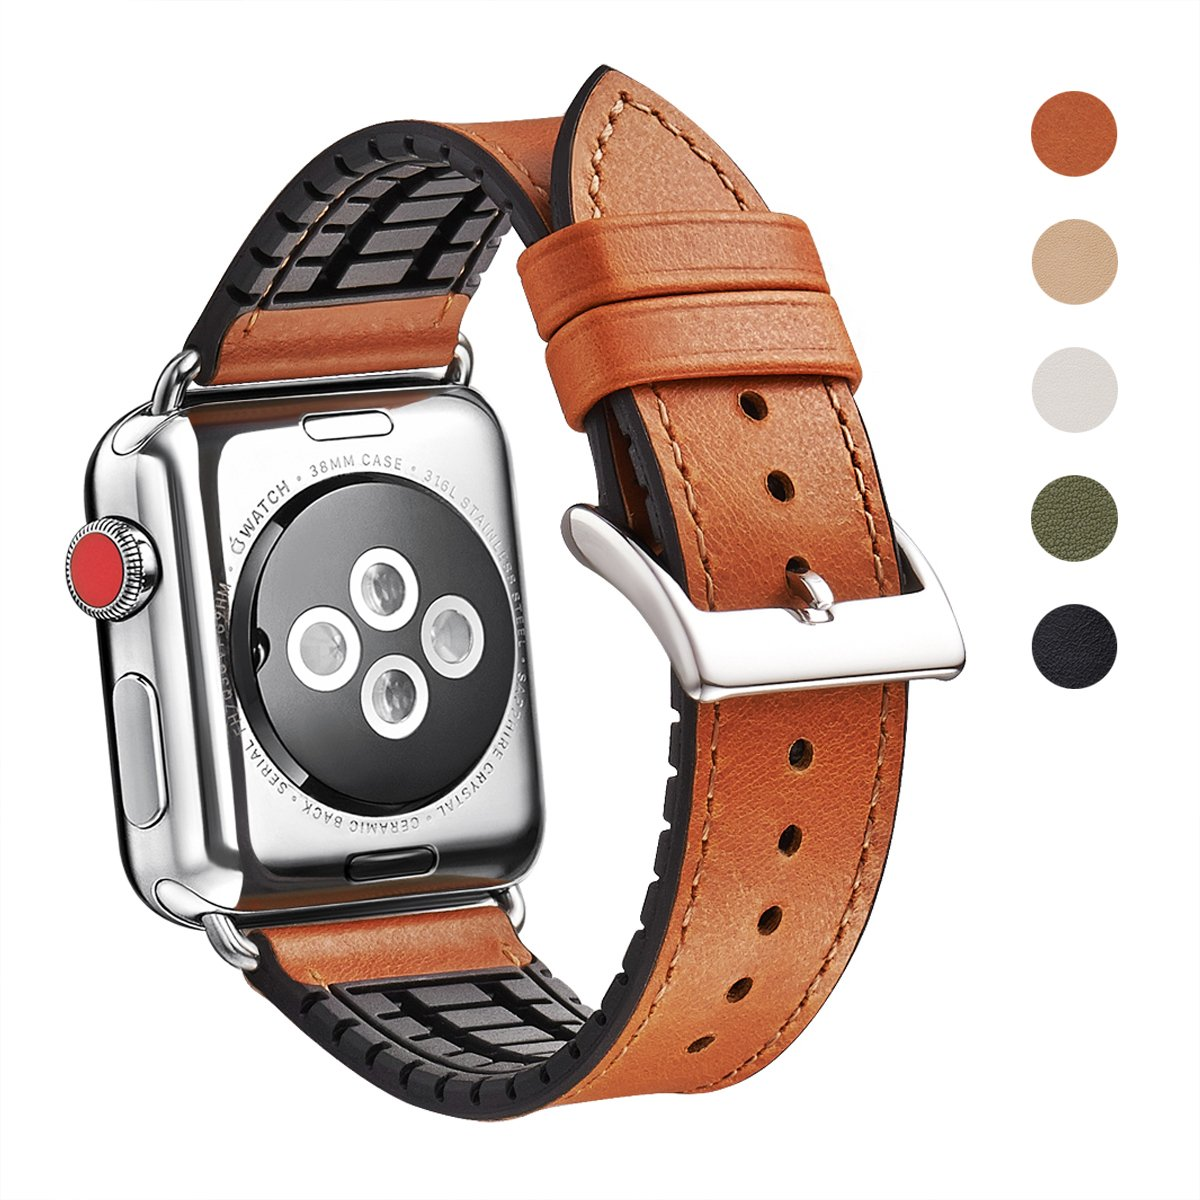 WFEAGL Compatible Apple Watch Band 38mm, Top Grain Leather And High-Quality Nature Rubber Hybrid Sweatproof Band Replacement Strap for iWatch Series 3,Series 2,Series 1,Sport (38mm Brown Hybrid Band)